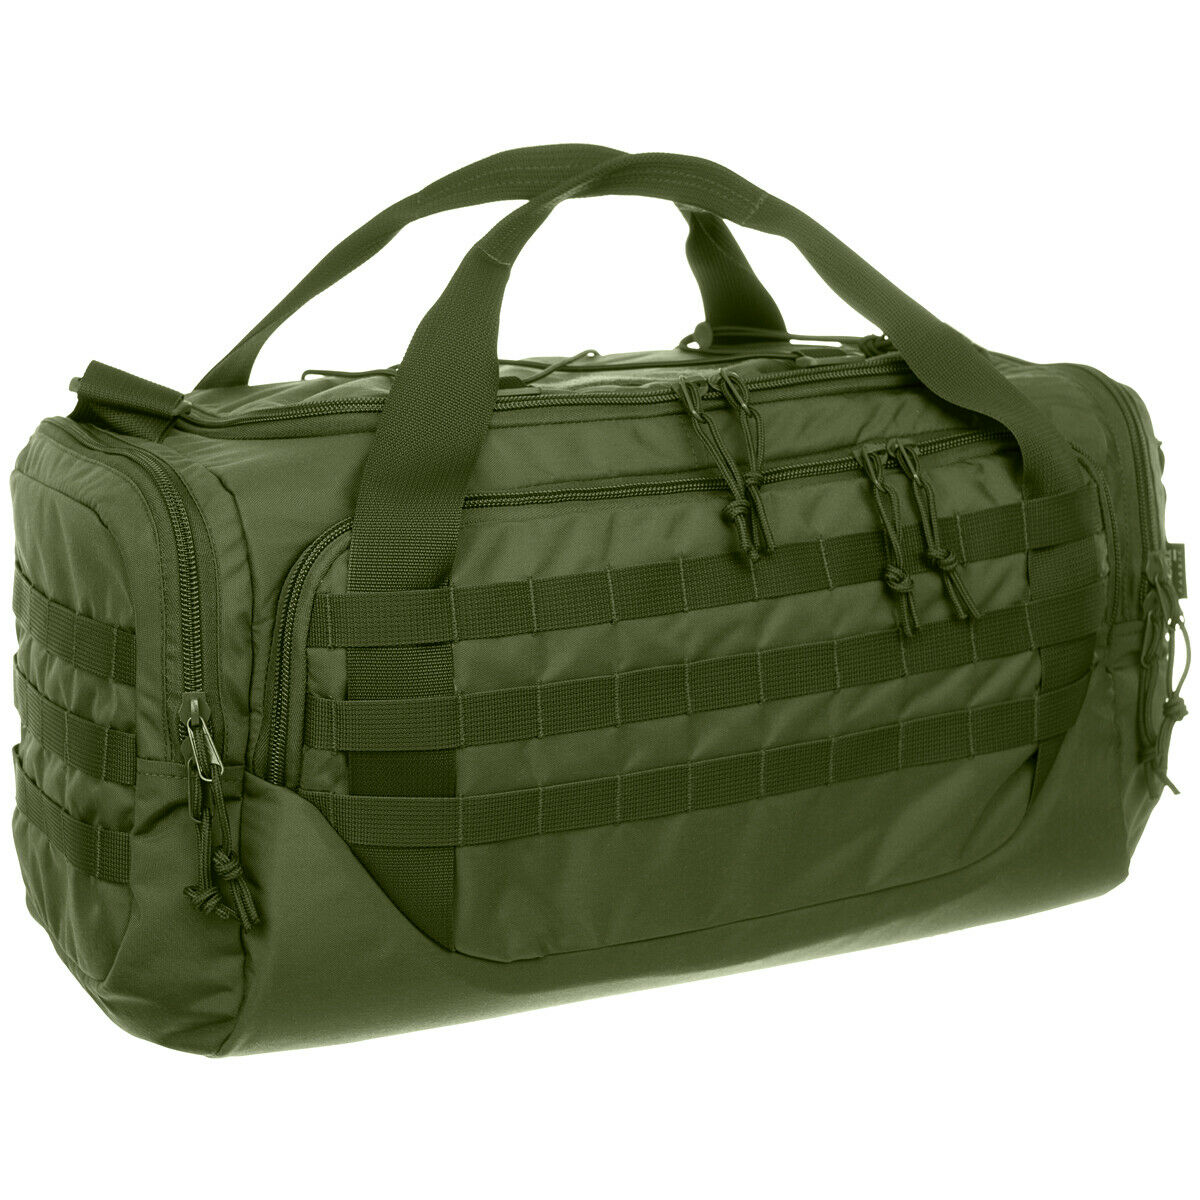 Wisport Stork Bag MOLLE PALS Military Army Police Tactical Patrol Olive Green